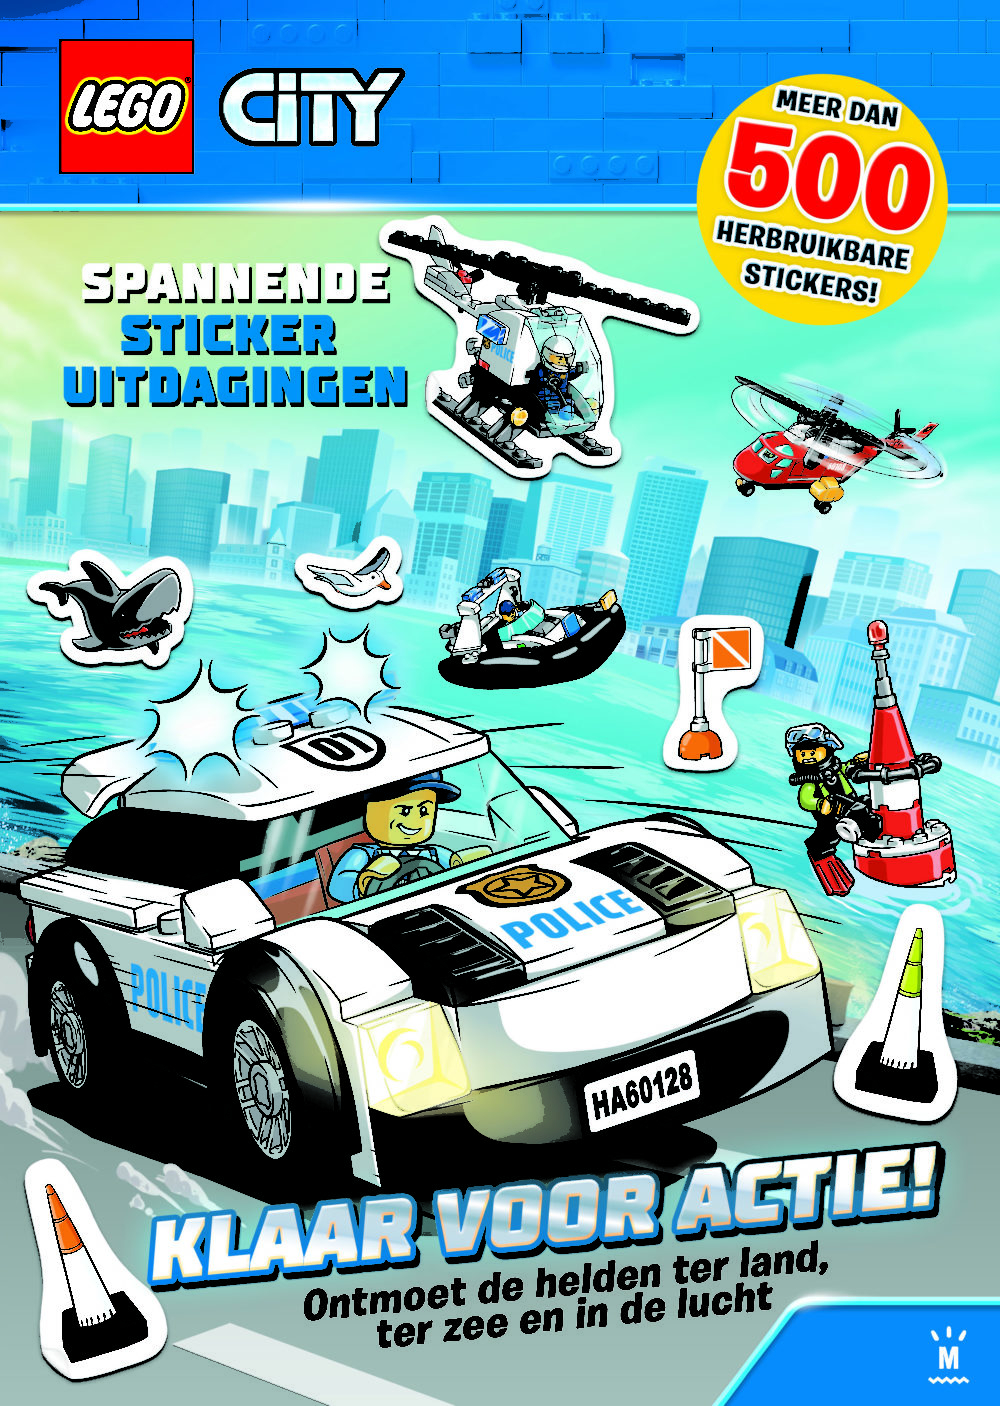 LEGO City stickerboek